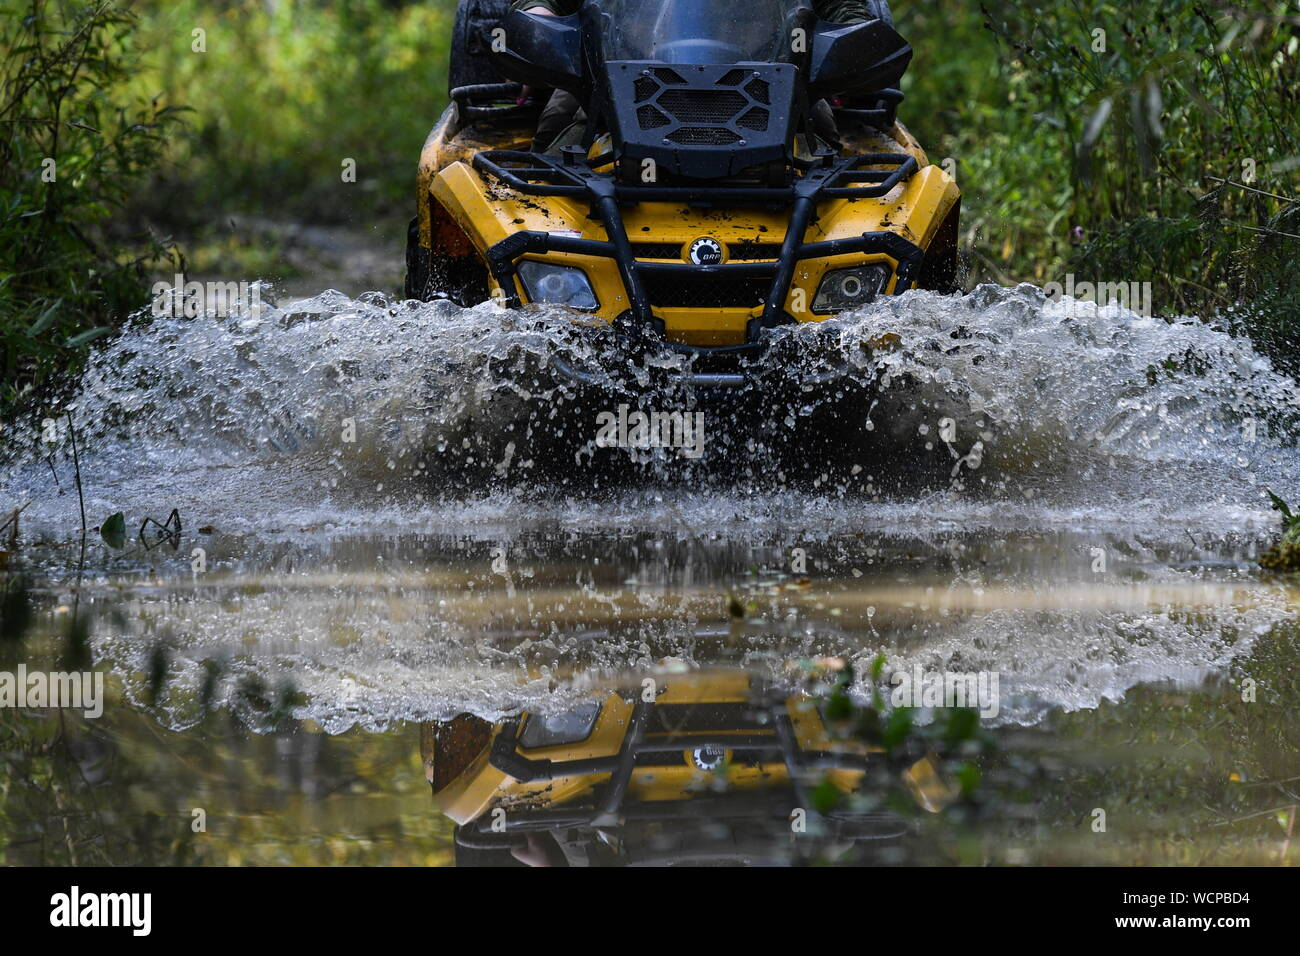 ALTAI TERRITORY, RUSSIA - AUGUST 28, 2019: A forest ranger rides an all-terrain vehicle in a protected area of taiga managed by KBU Altaipriroda in Togul District of Russia's Altai Territory, which is to become part of a protected area under the working name of Togul National Park; according to the Russian government's project Ekologia (Ecology), the proposed national park is to be established by 2024 and to include parts of Zarinsk District, Togul District, and Yeltsovka District of the Altai Territory, with a total area of over 160 hectares. Kirill Kukhmar/TASS Stock Photo